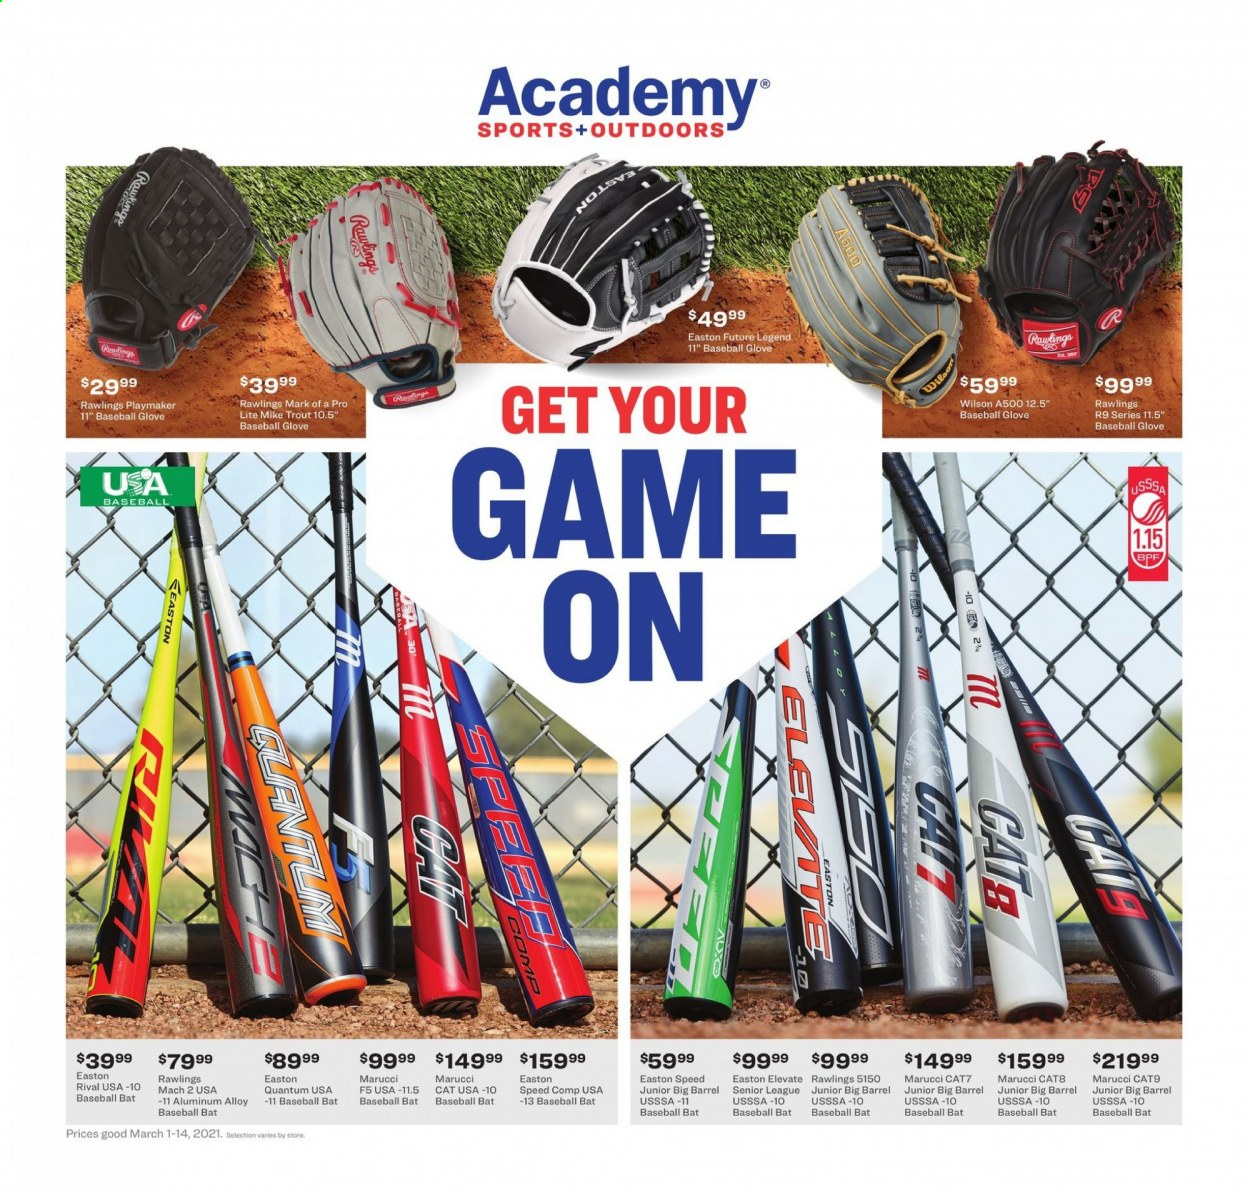 Academy Sports Flyer - 03.01.2021 - 03.14.2021 - Sales products - Wilson, EASTON, baseball glove, baseball bat. Page 1.